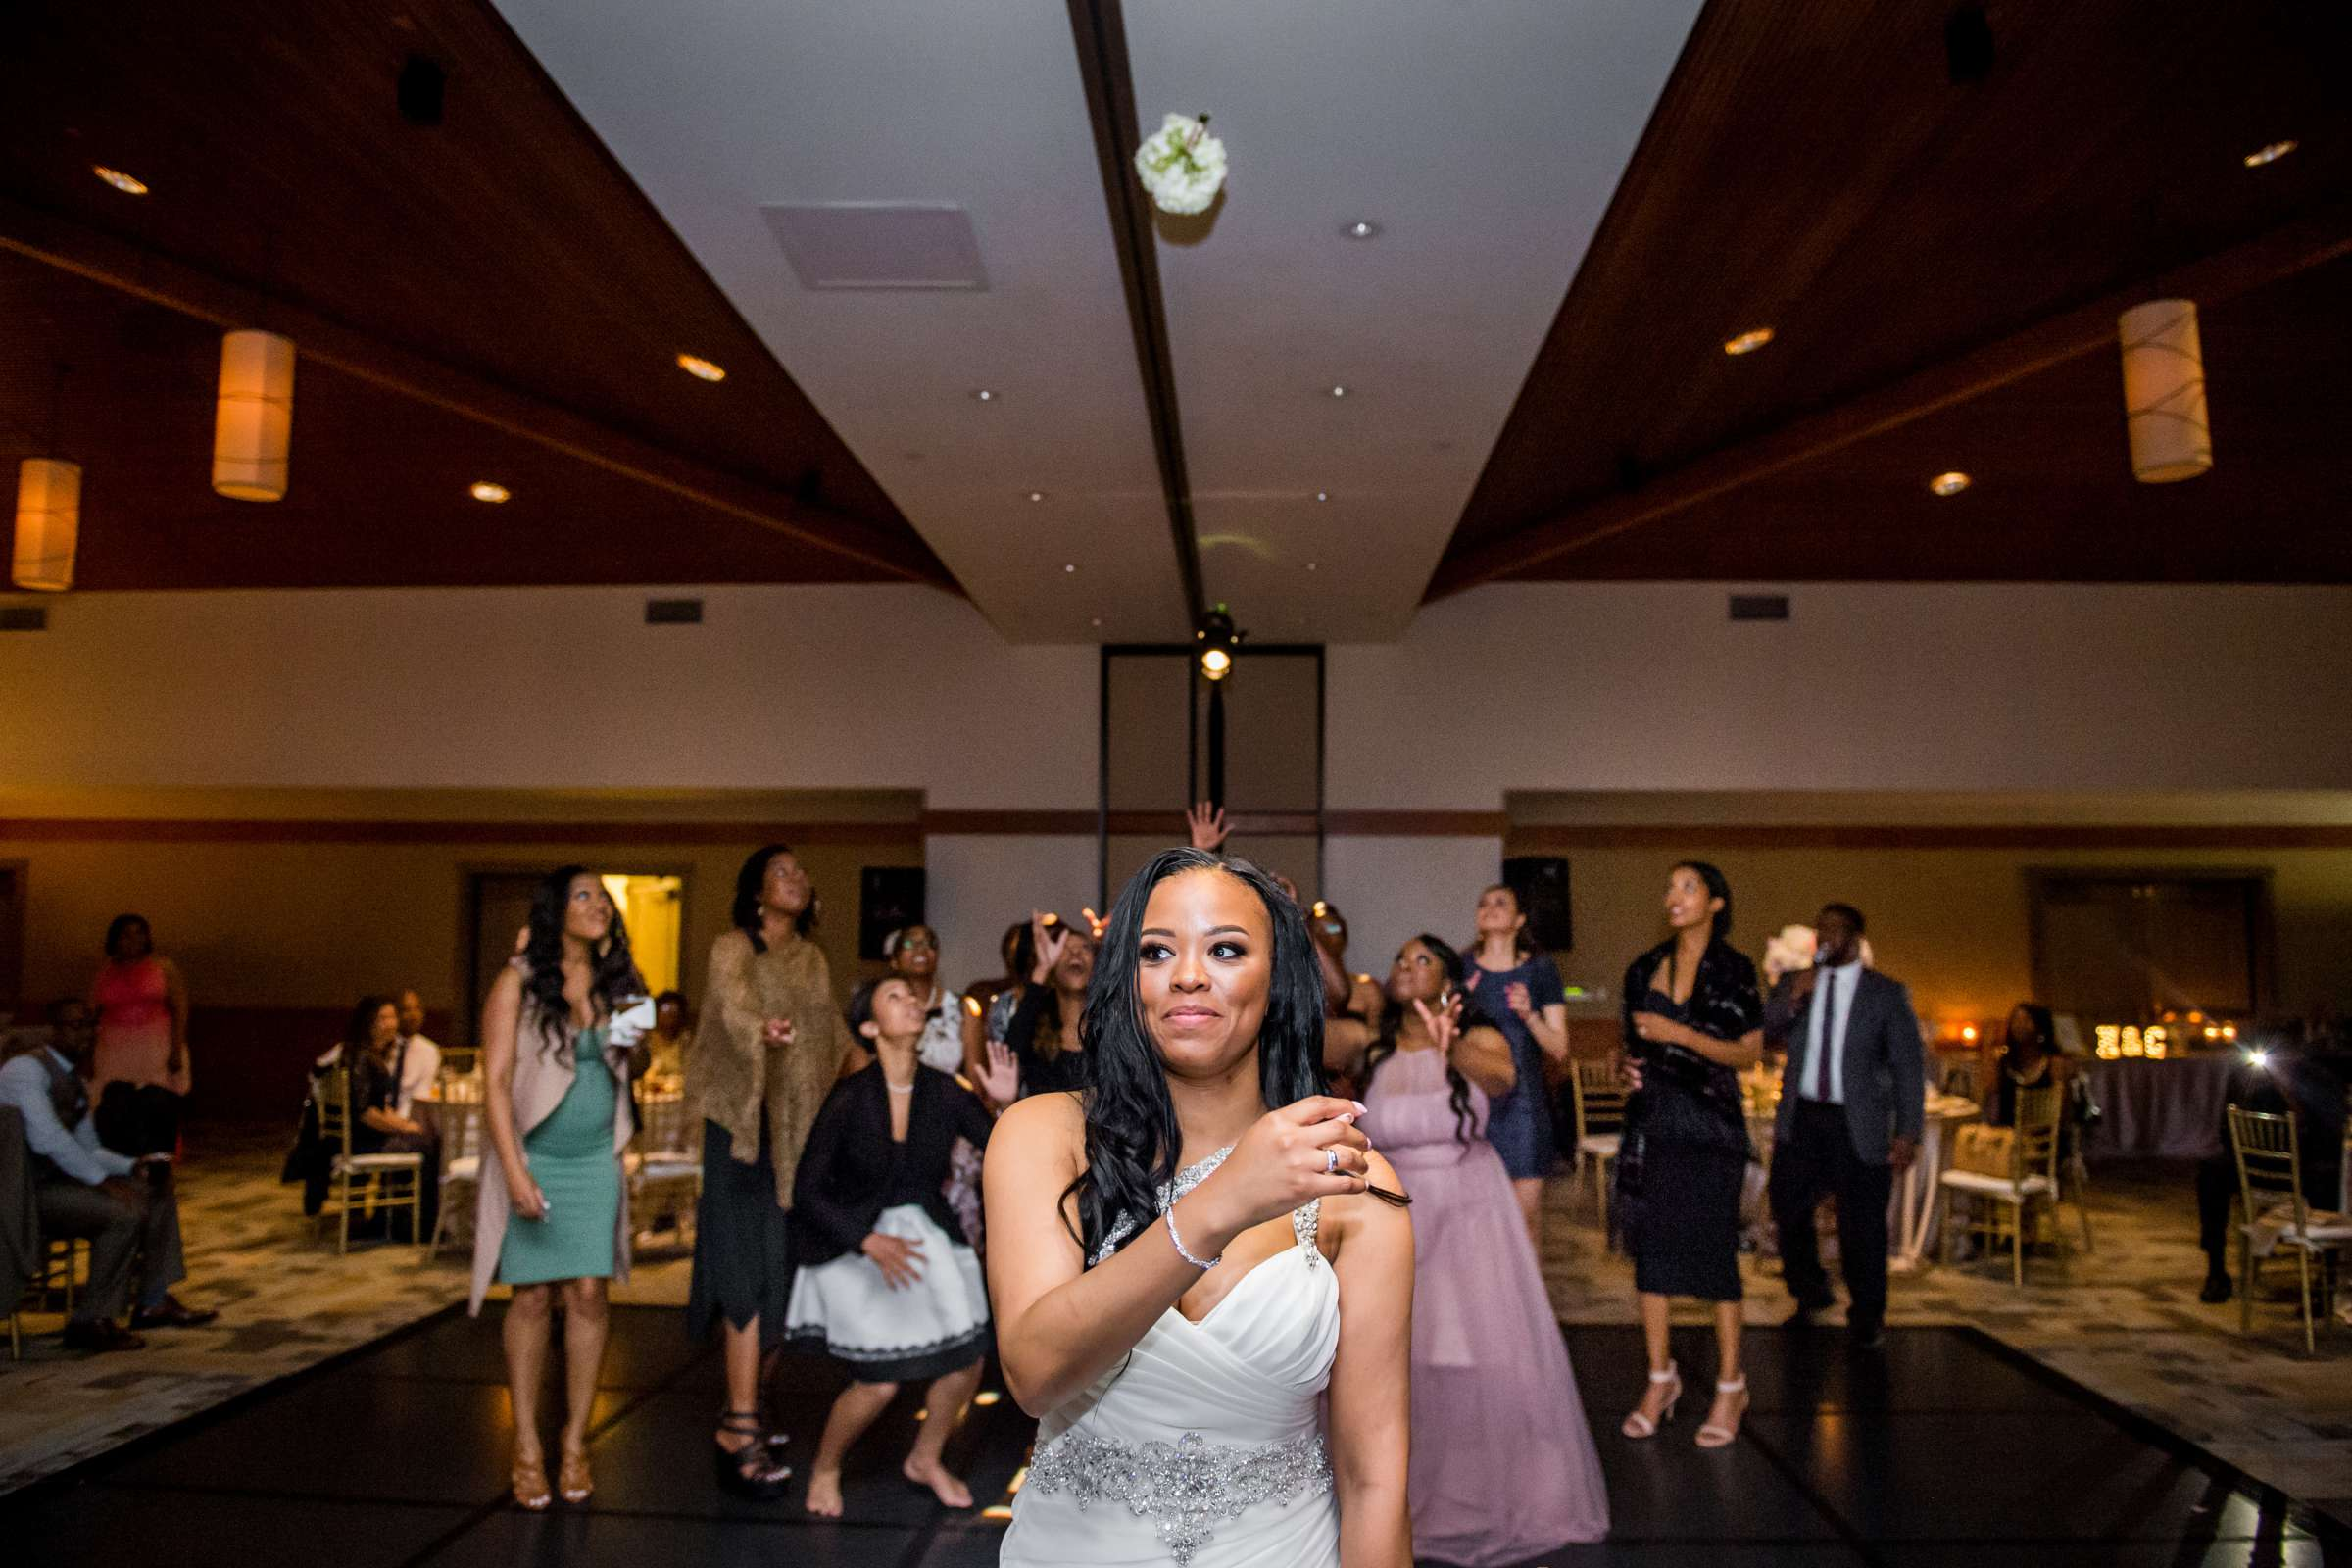 Coronado Community Center Wedding coordinated by First Comes Love Weddings & Events, Nikia and Charles Wedding Photo #96 by True Photography